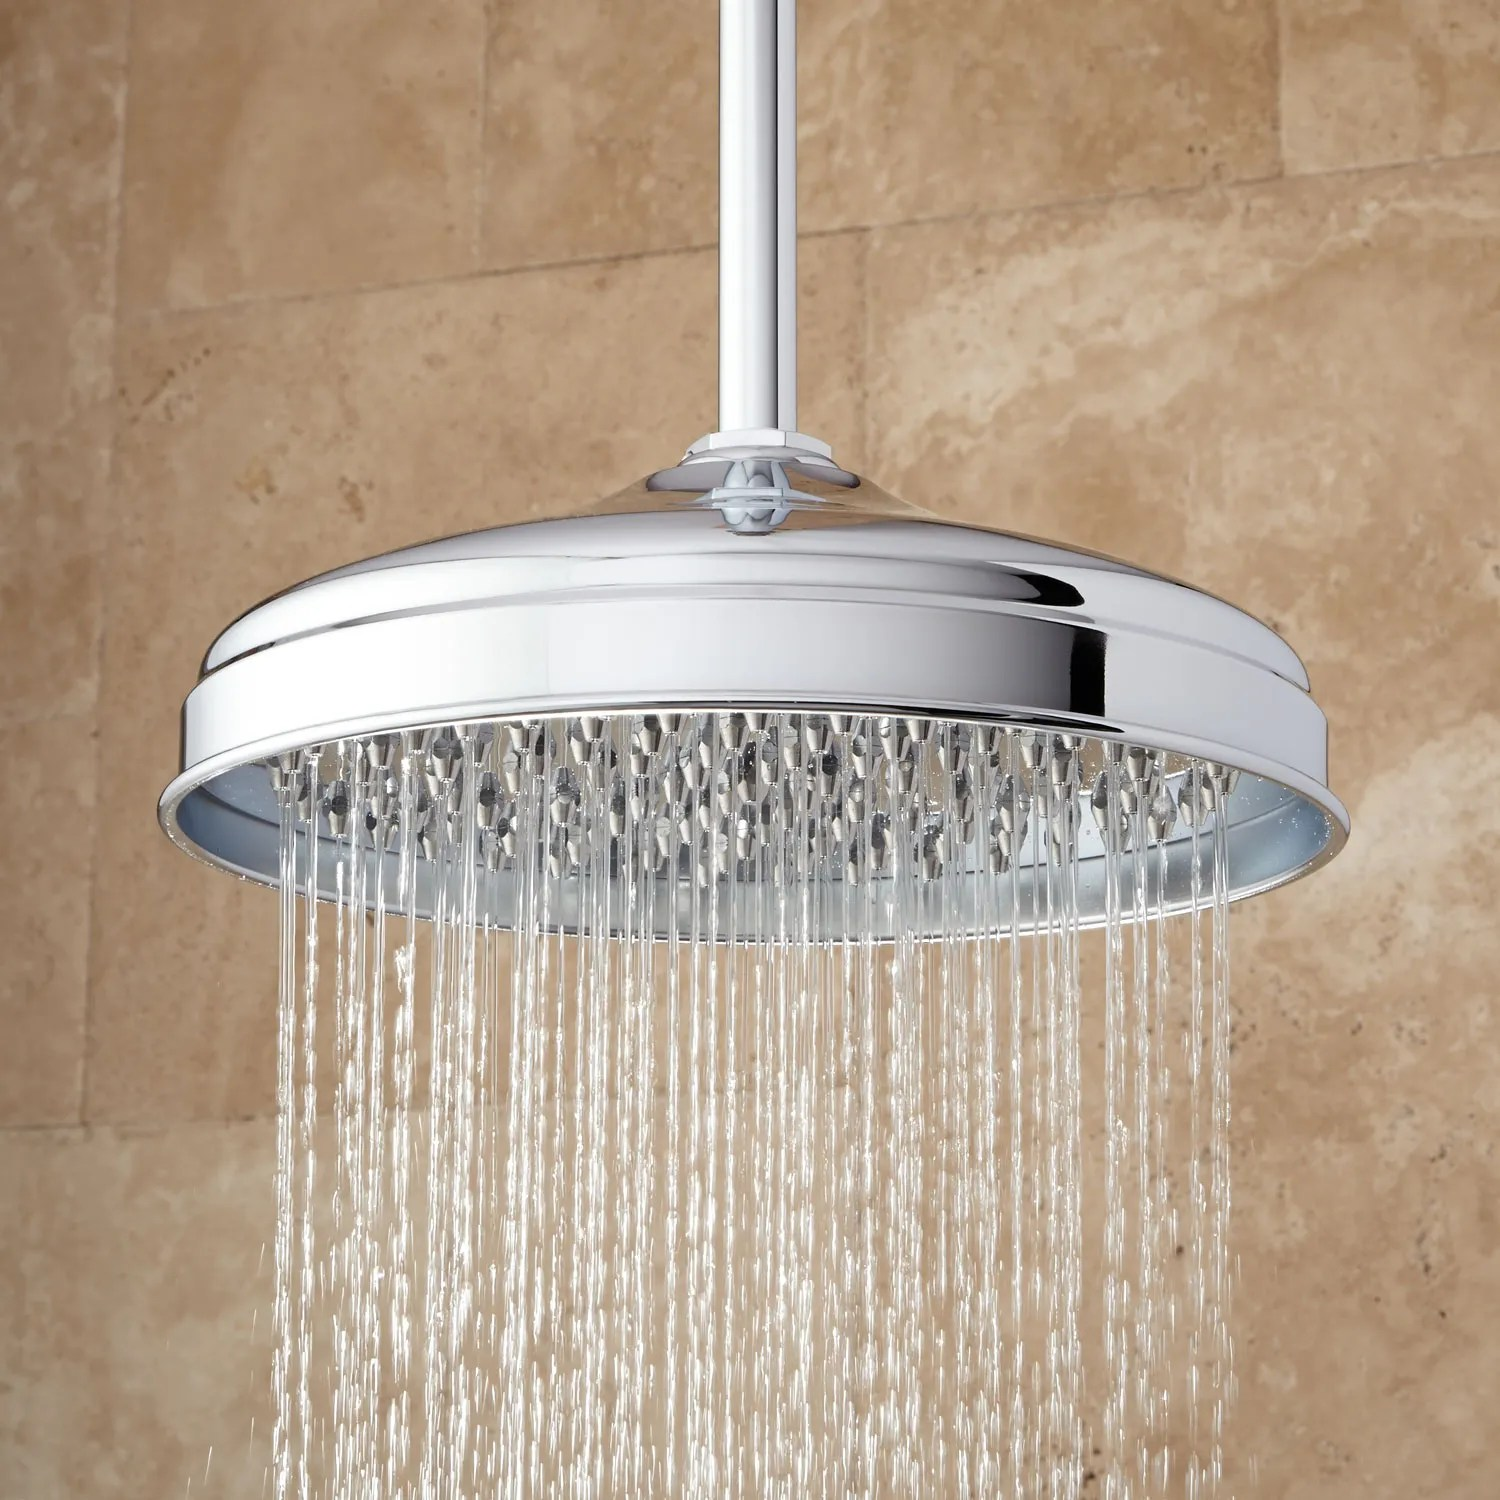 Glenley Shower System Dual Shower Heads and 3 Sprays Lever Handle  eBay